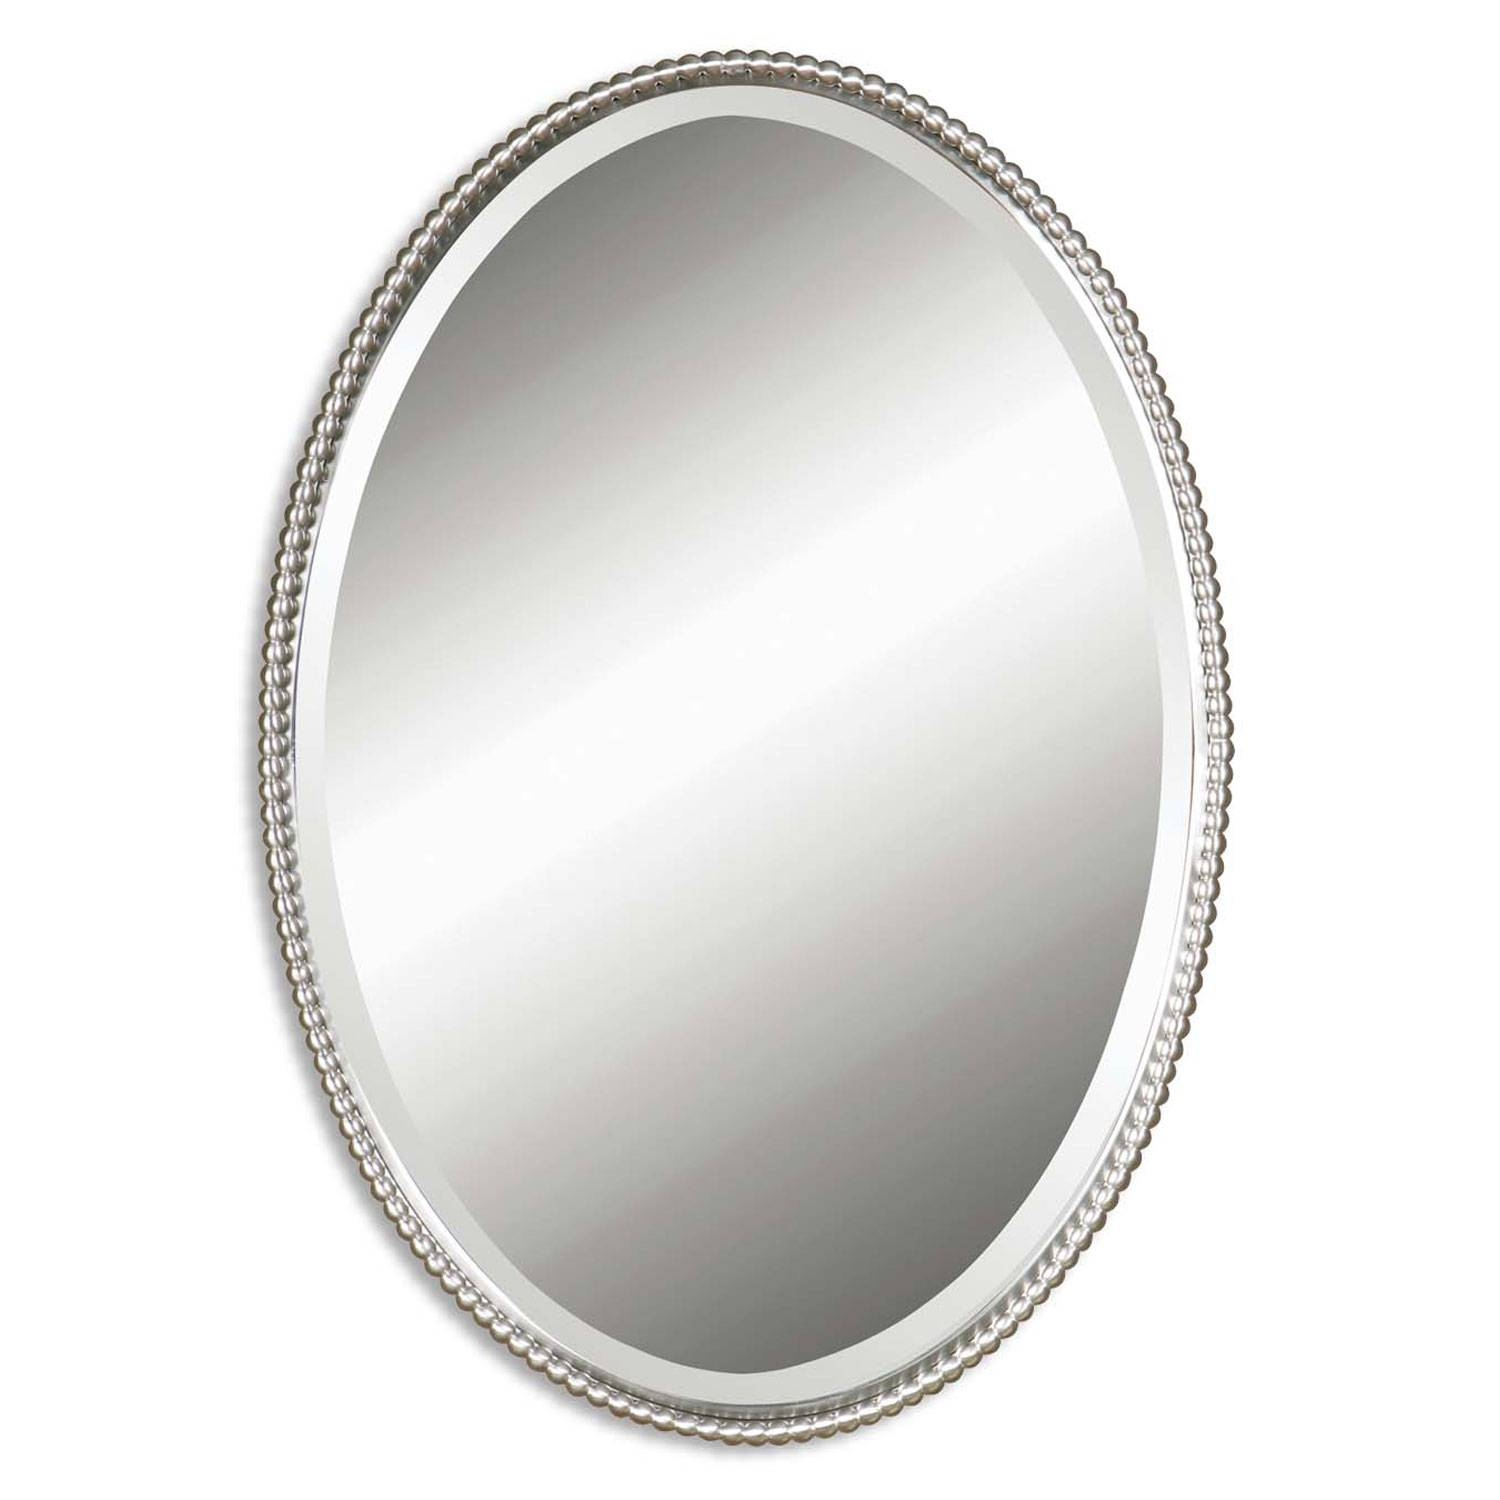 Oval White Mirror Bathroom – Imanlive Throughout Oval White Mirrors (View 6 of 15)